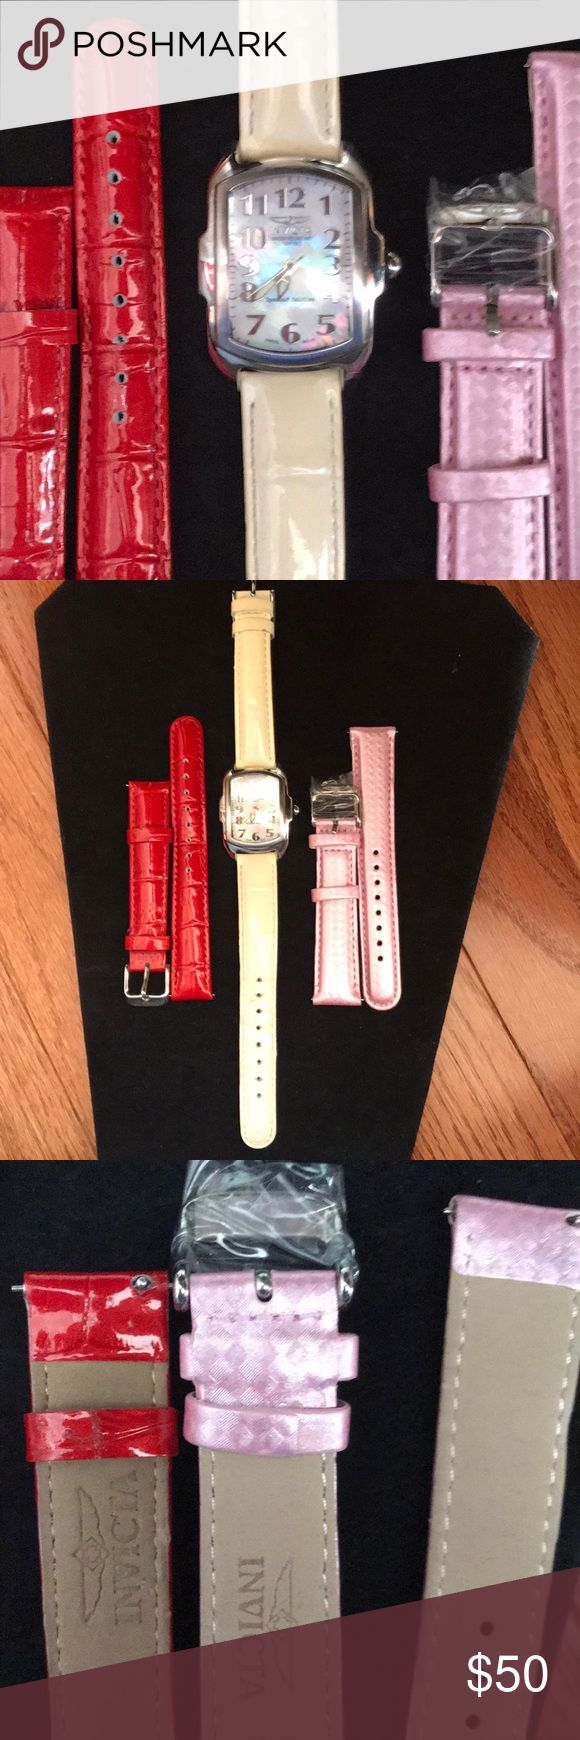 Pearl face Invicta watch with 3 bands *NEEDS BATTERY* This pearl faced Invicta watch needs a battery. I'm used but good condition. The red and pink band have never been used. Beautiful watch Jewelry